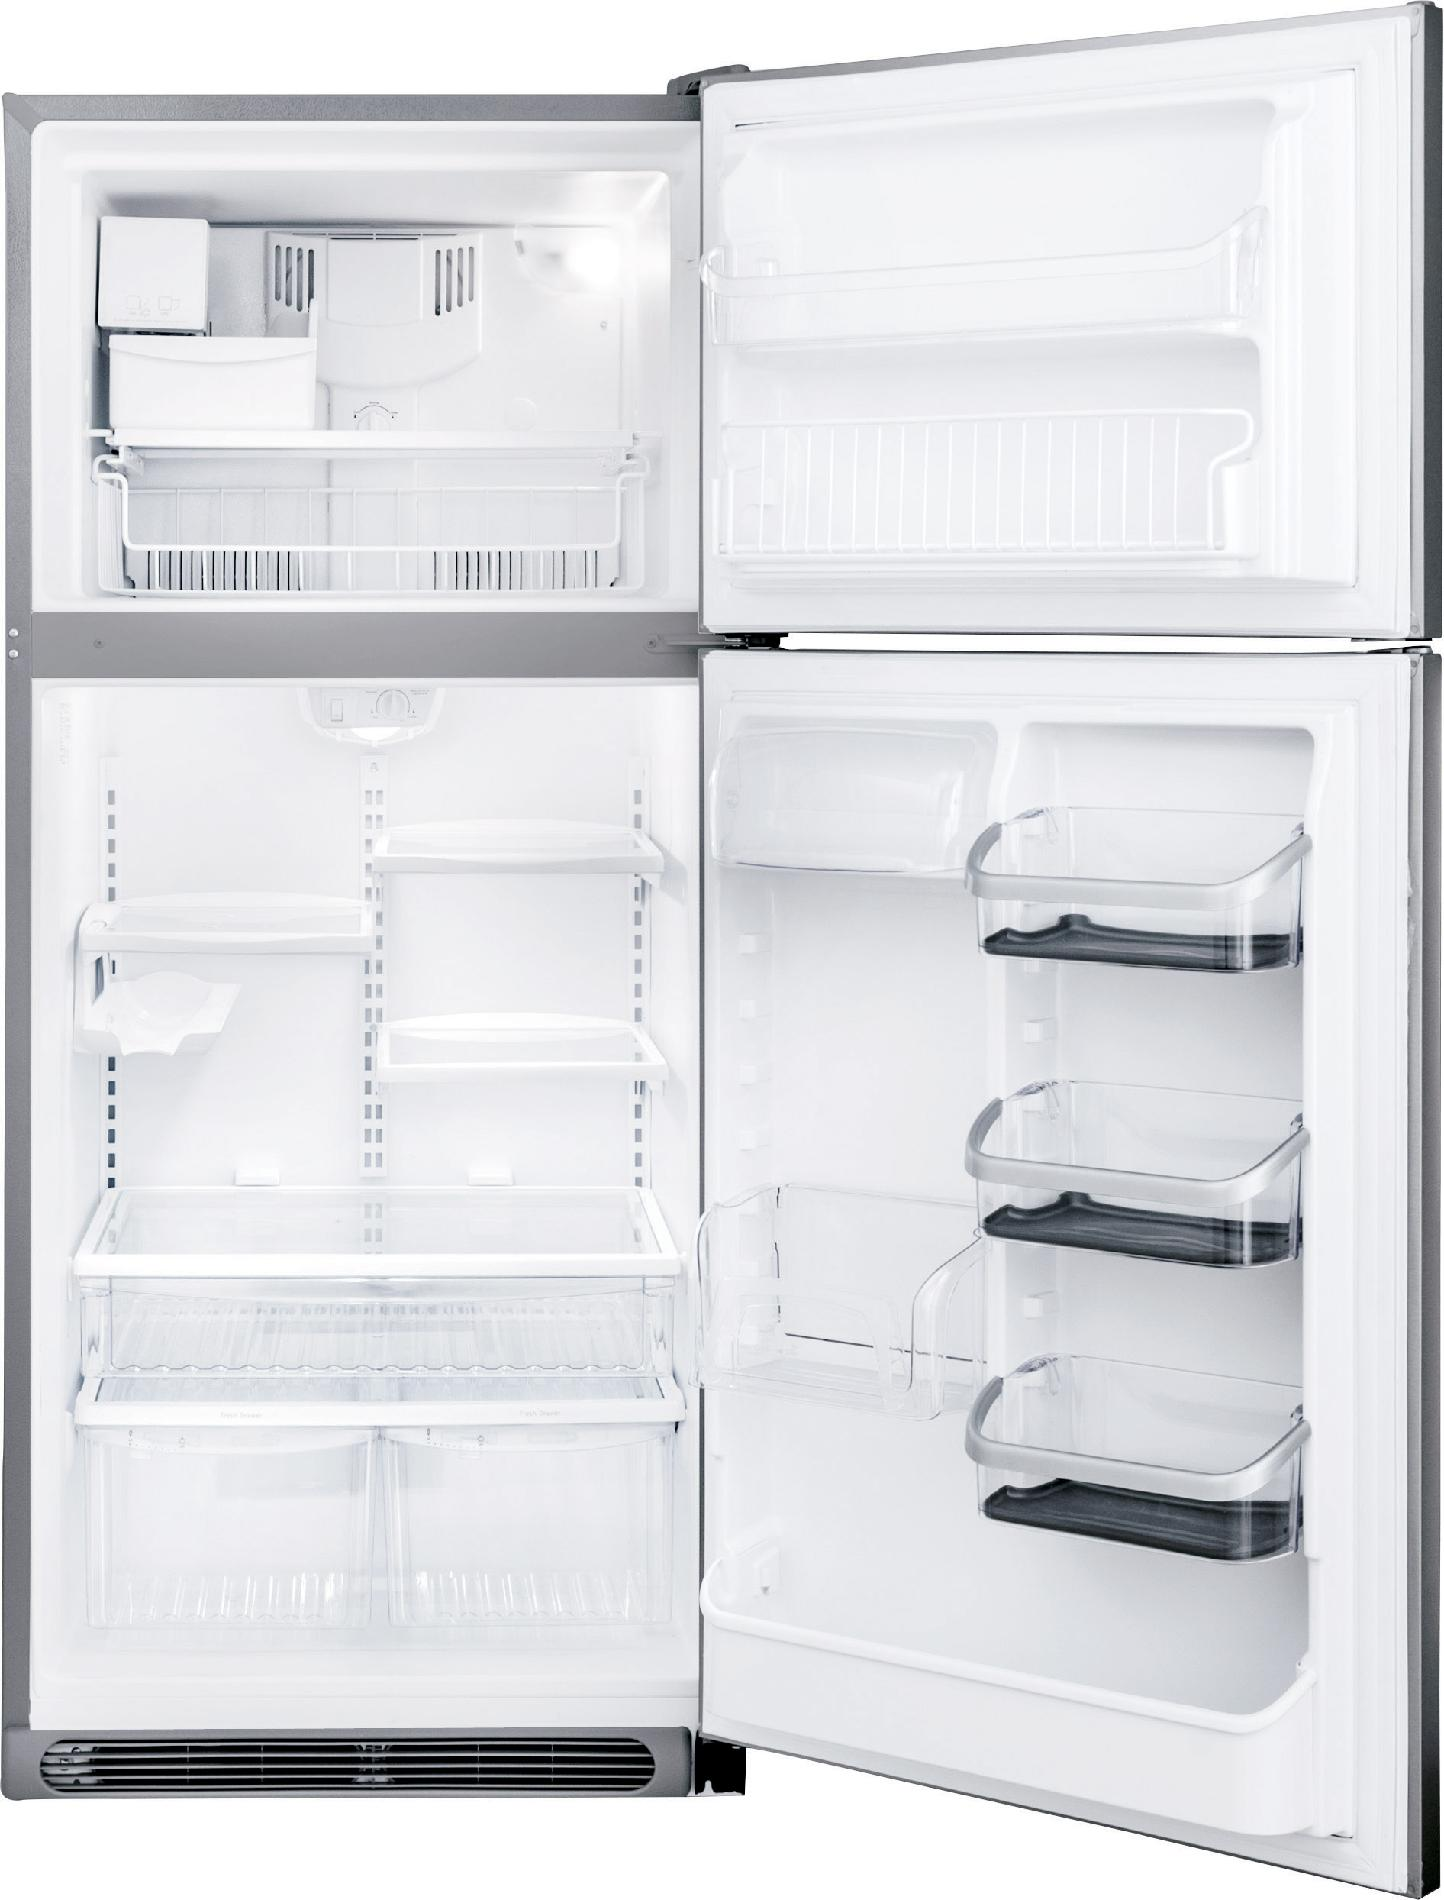 Frigidaire Professional 20.6 cu. ft. Top-Freezer Refrigerator - Stainless Steel